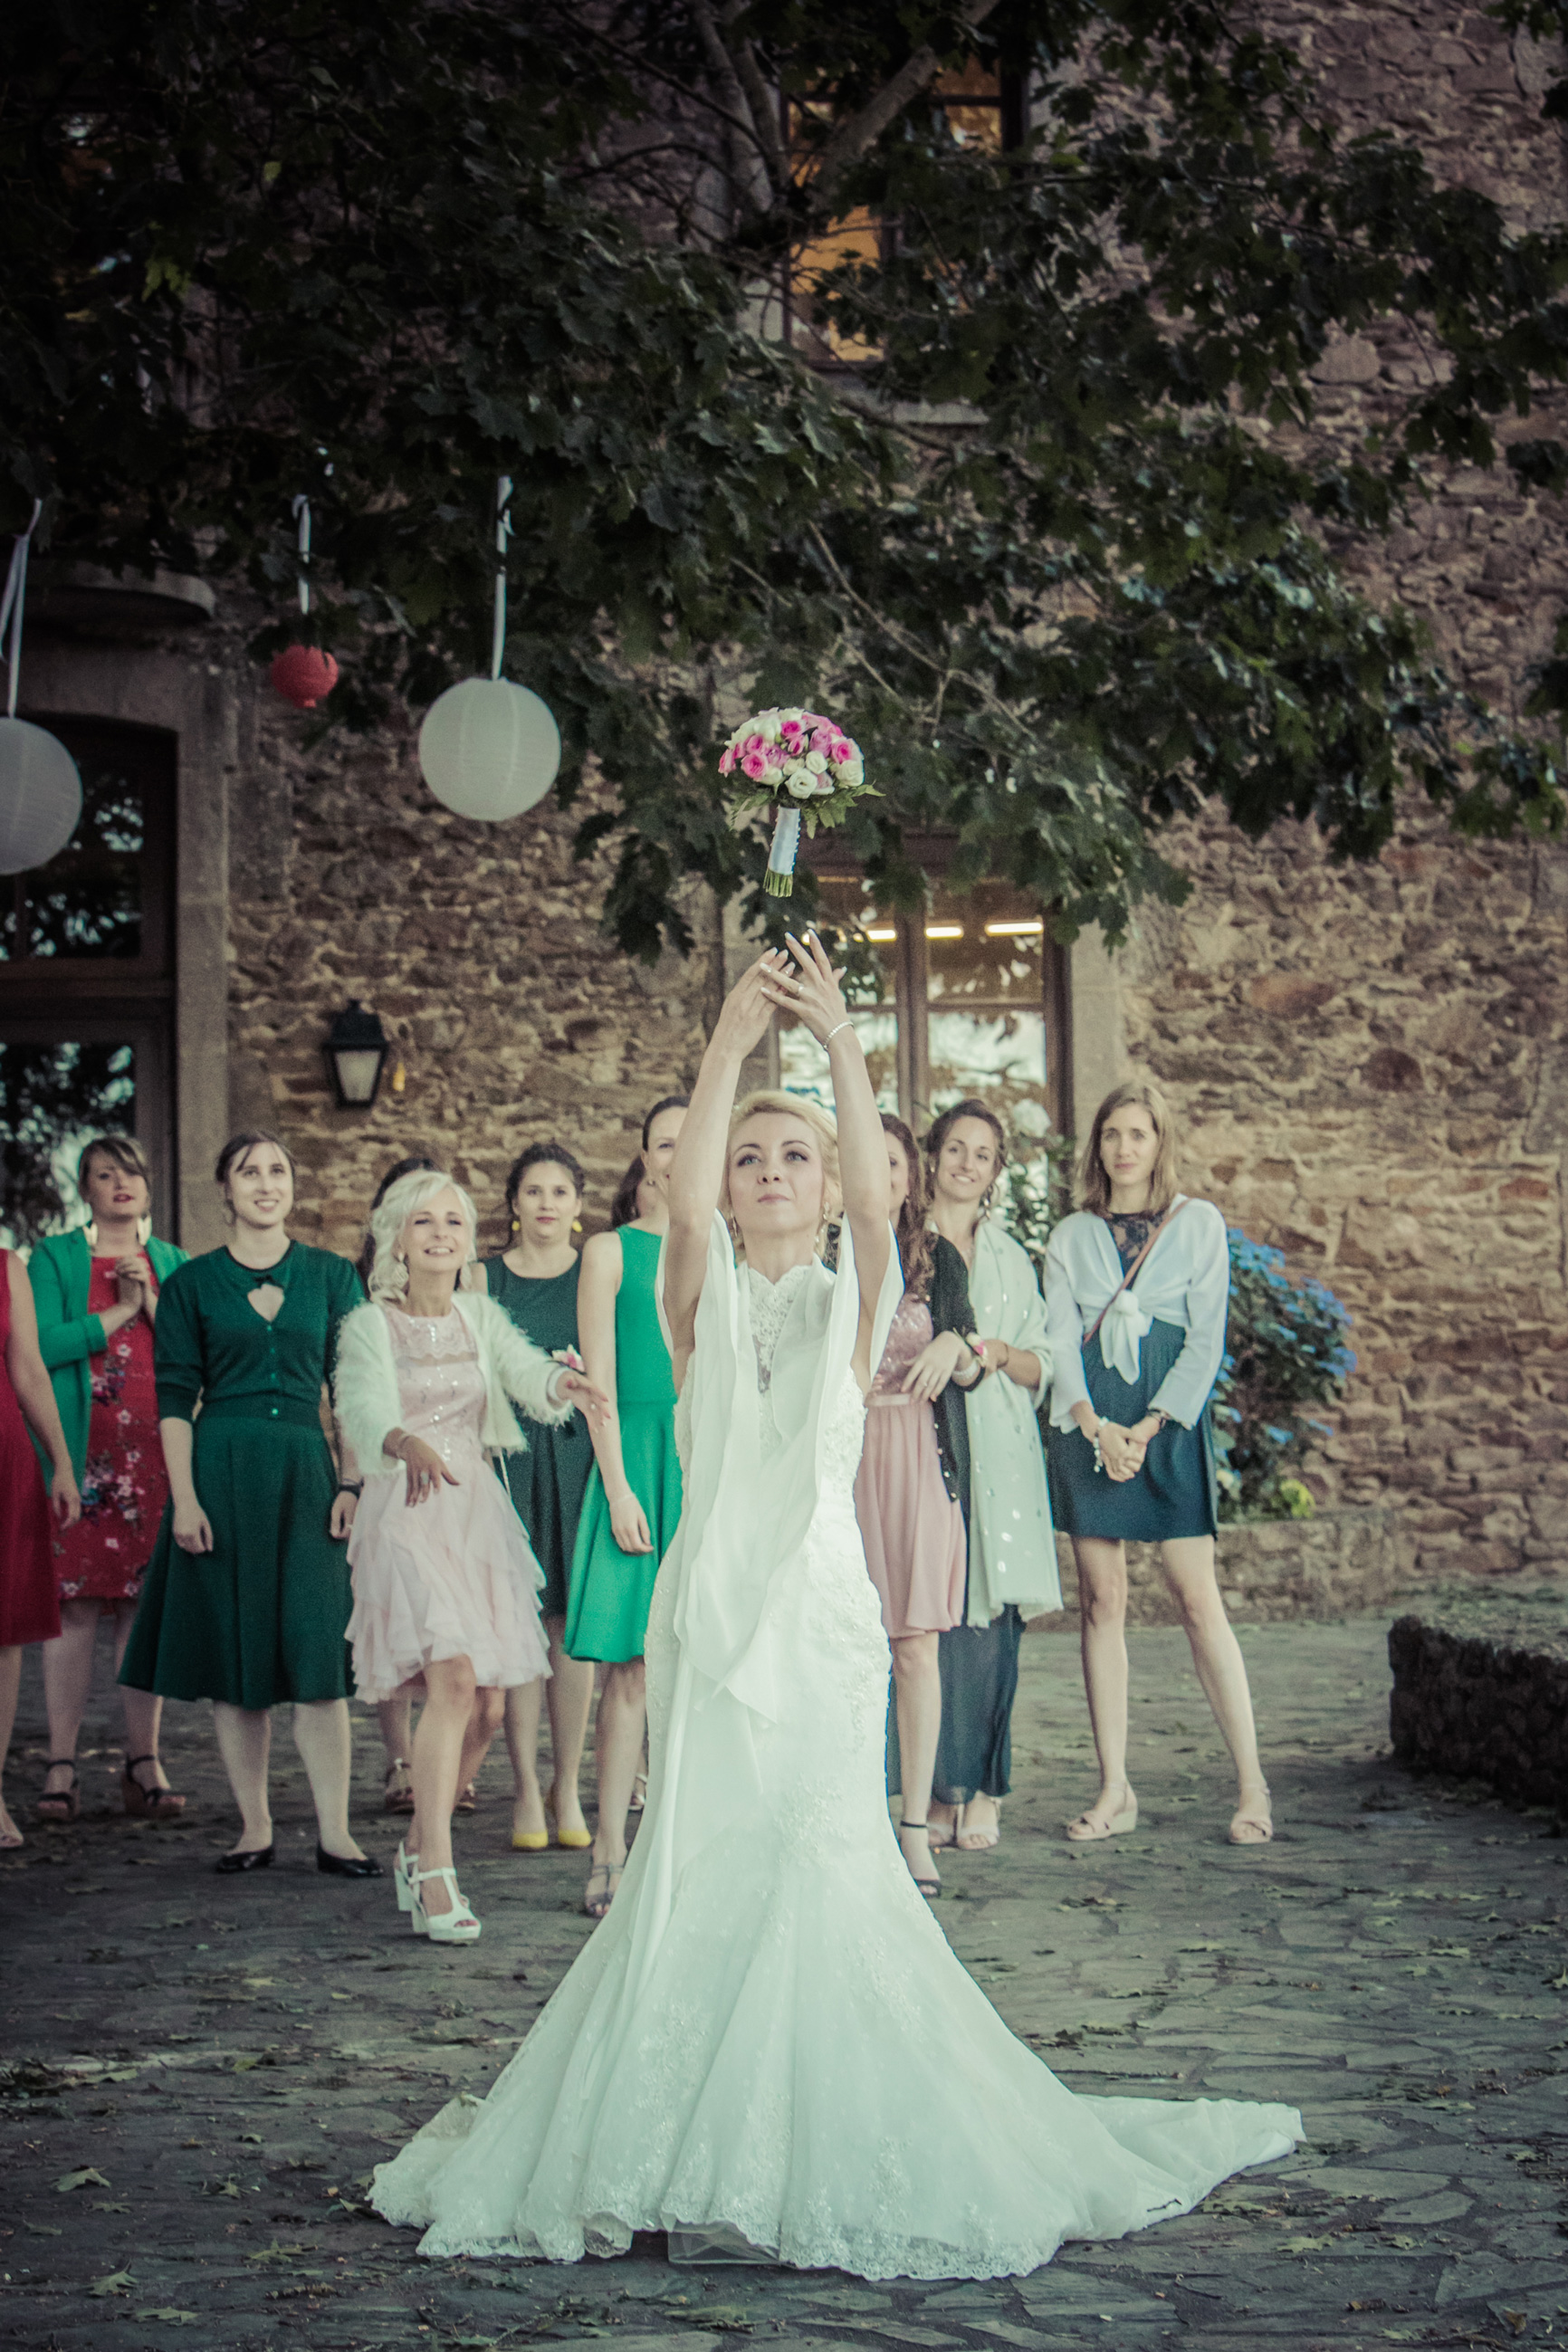 Magnificence Photographie Video Mariage Occitanie Aveyron Toulouse 00046